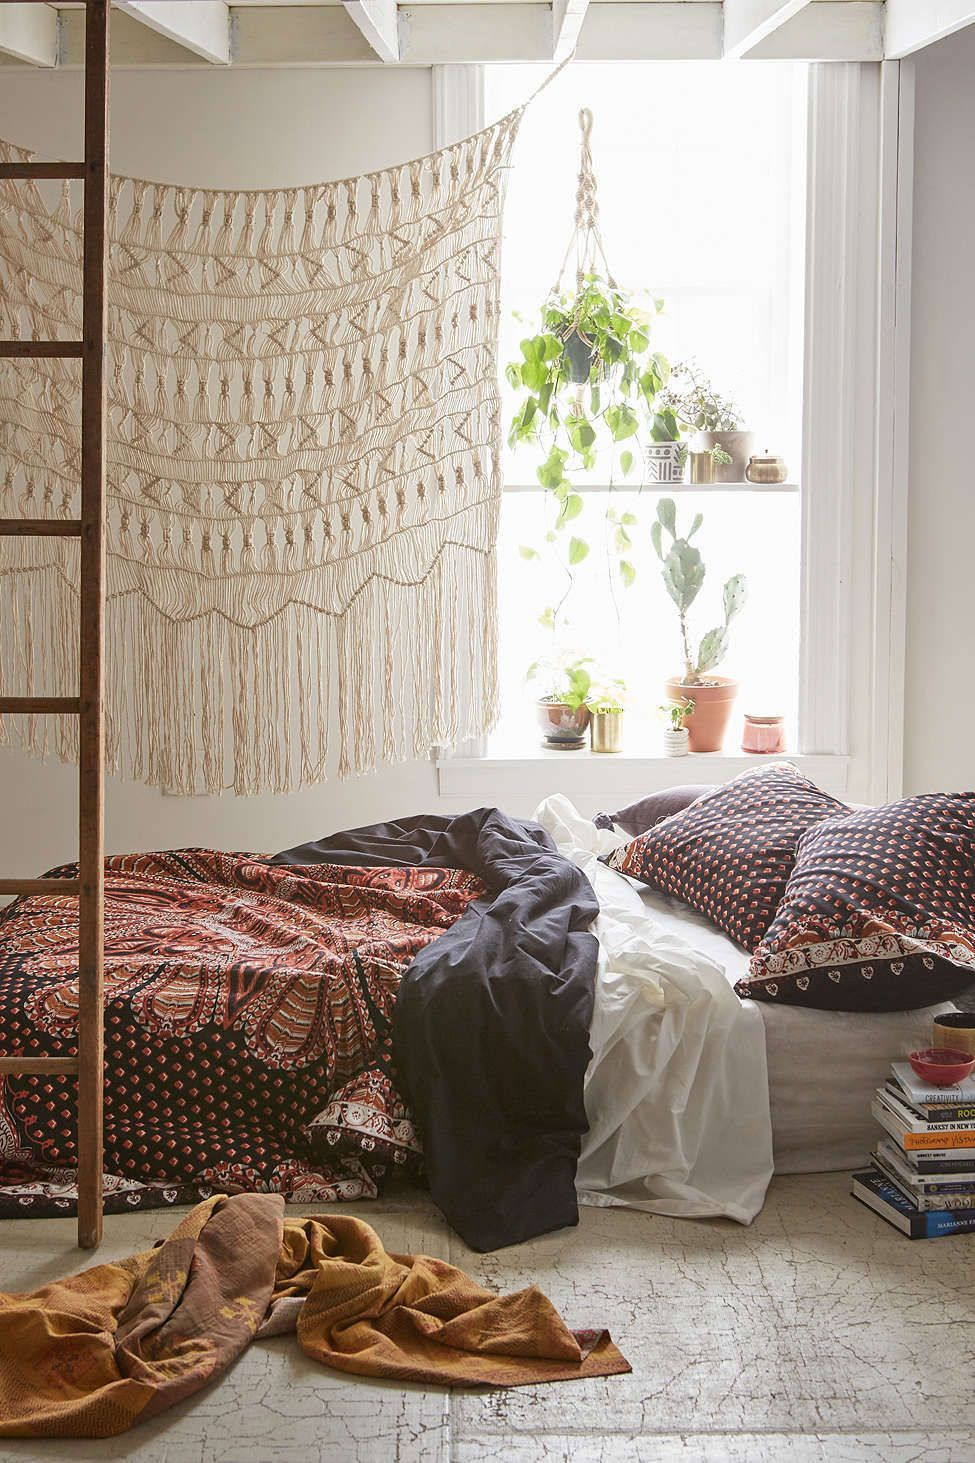 Dreamy Boho Bedroom Daily Dream Decor